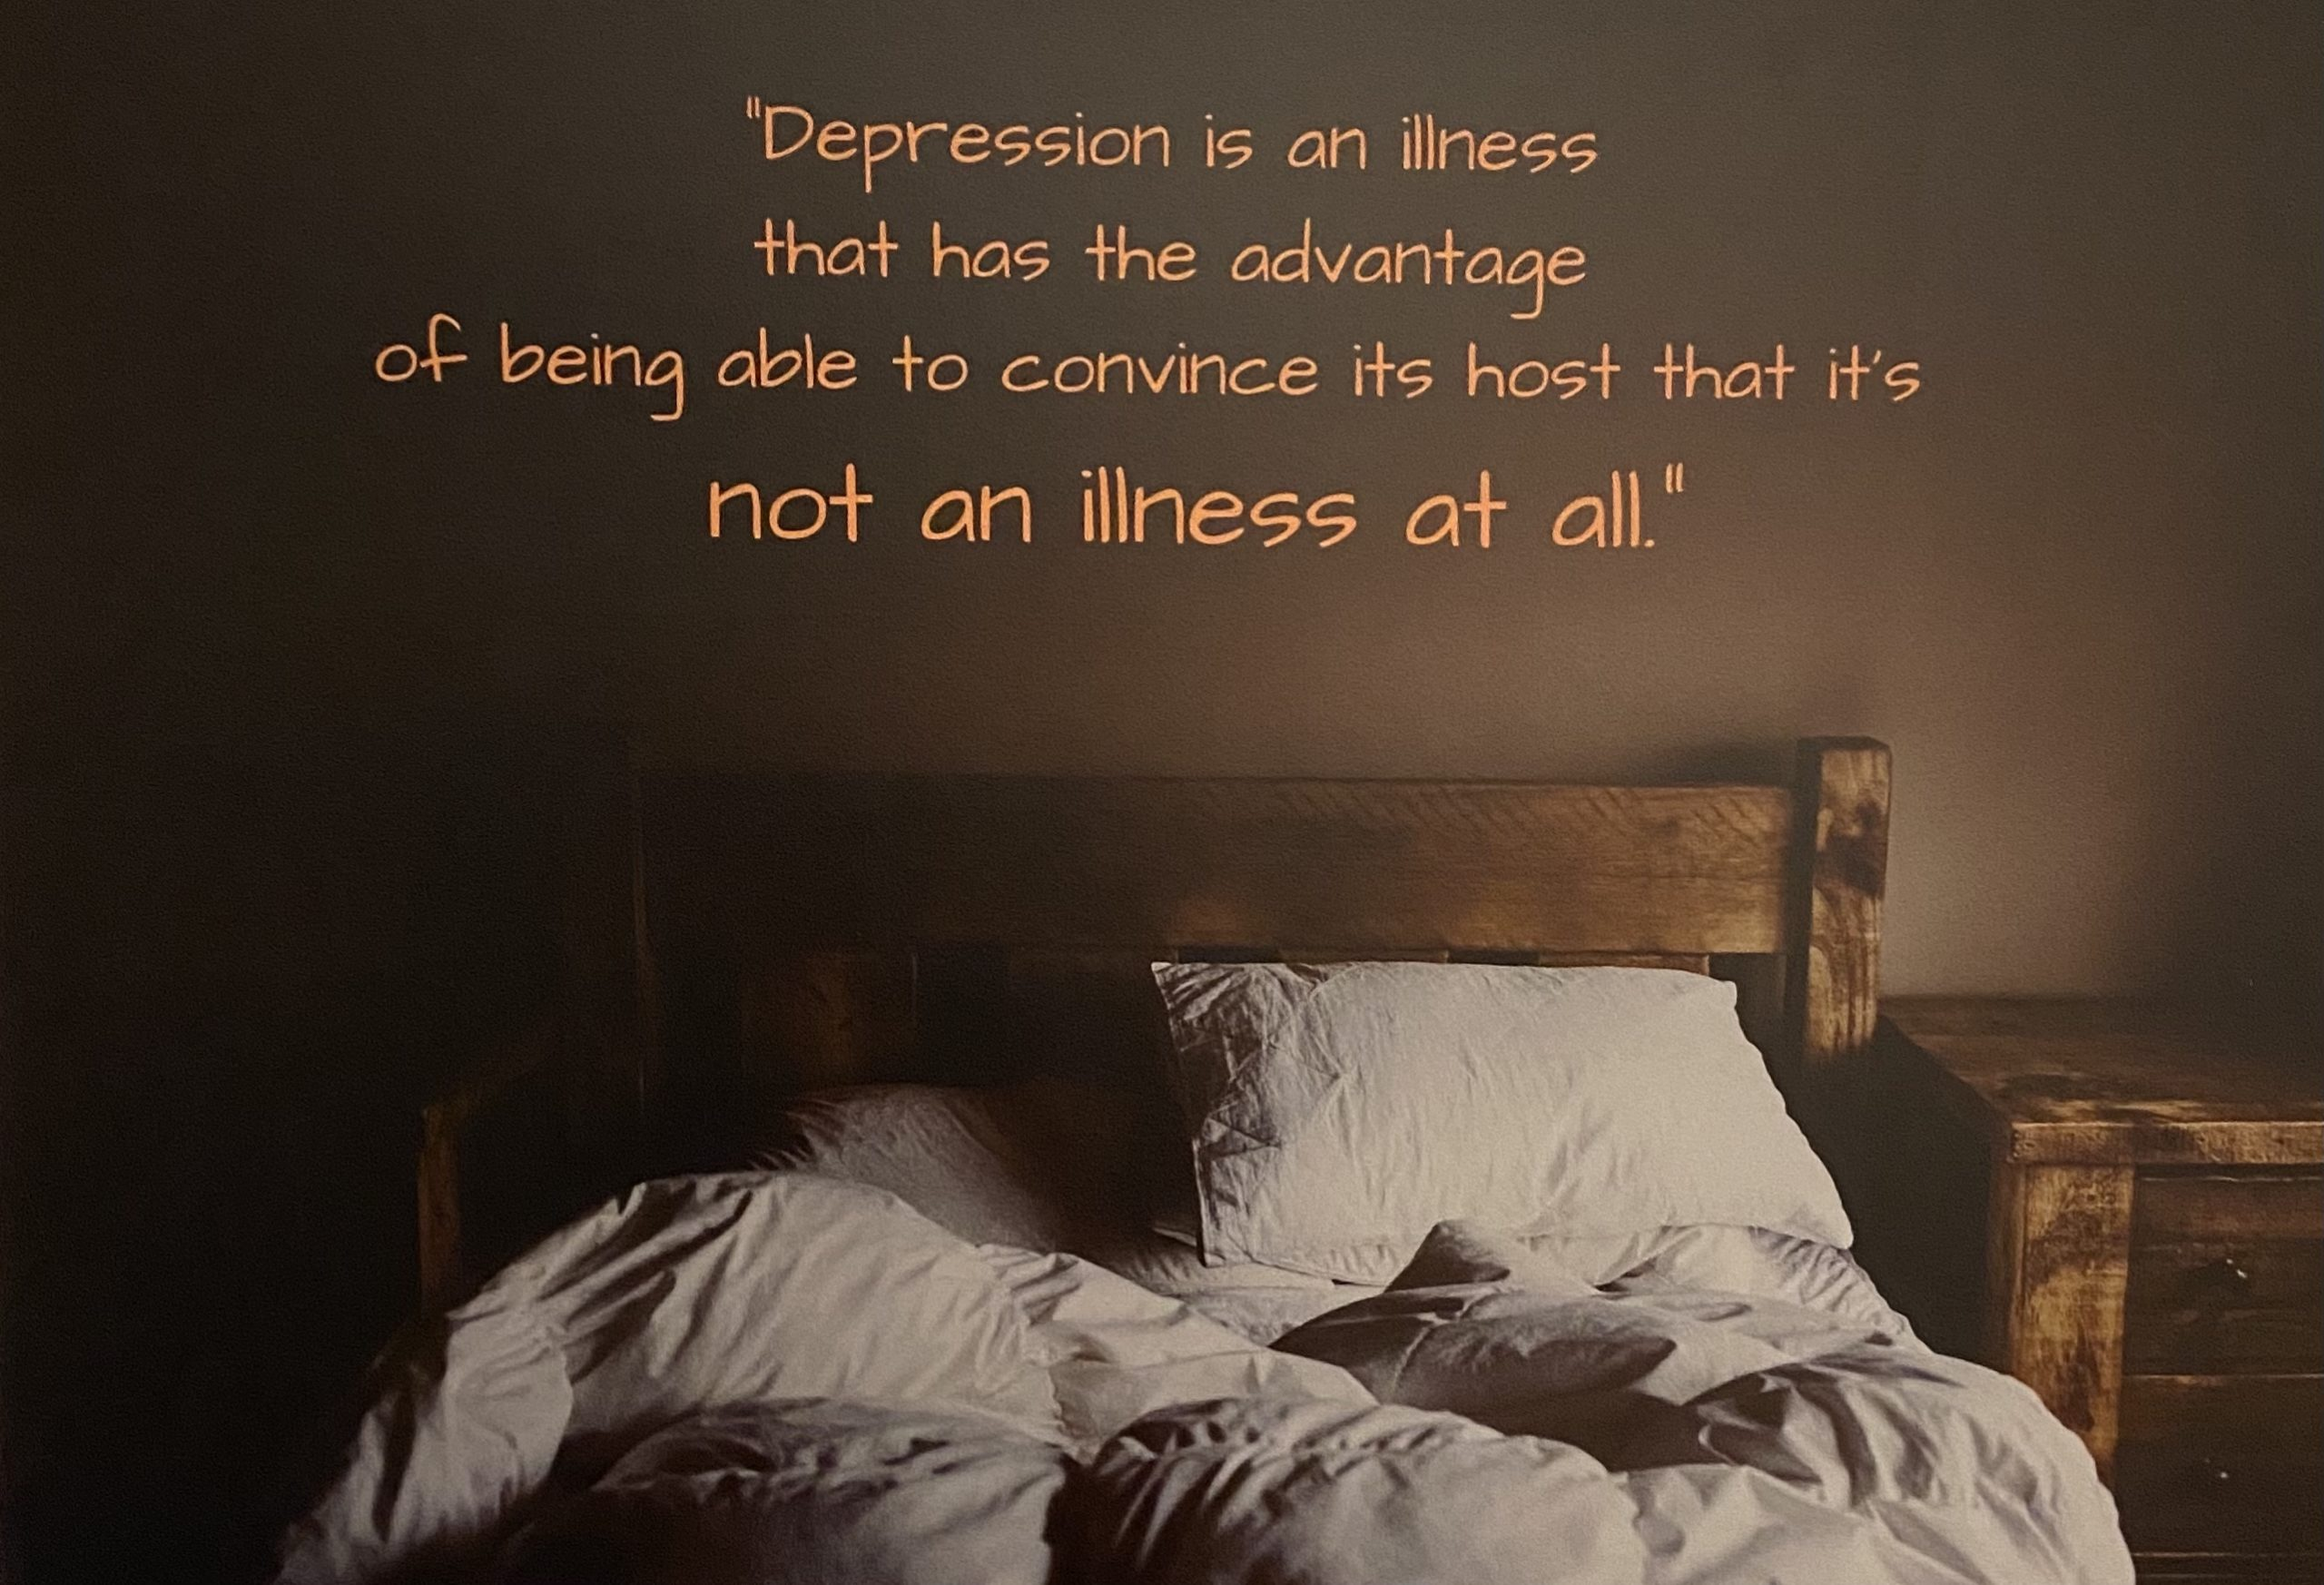 """a bed with wrinkled covers, and the words """"Depression is an illness that has the advantage of being able to convince the host that it's not an illness at all."""""""